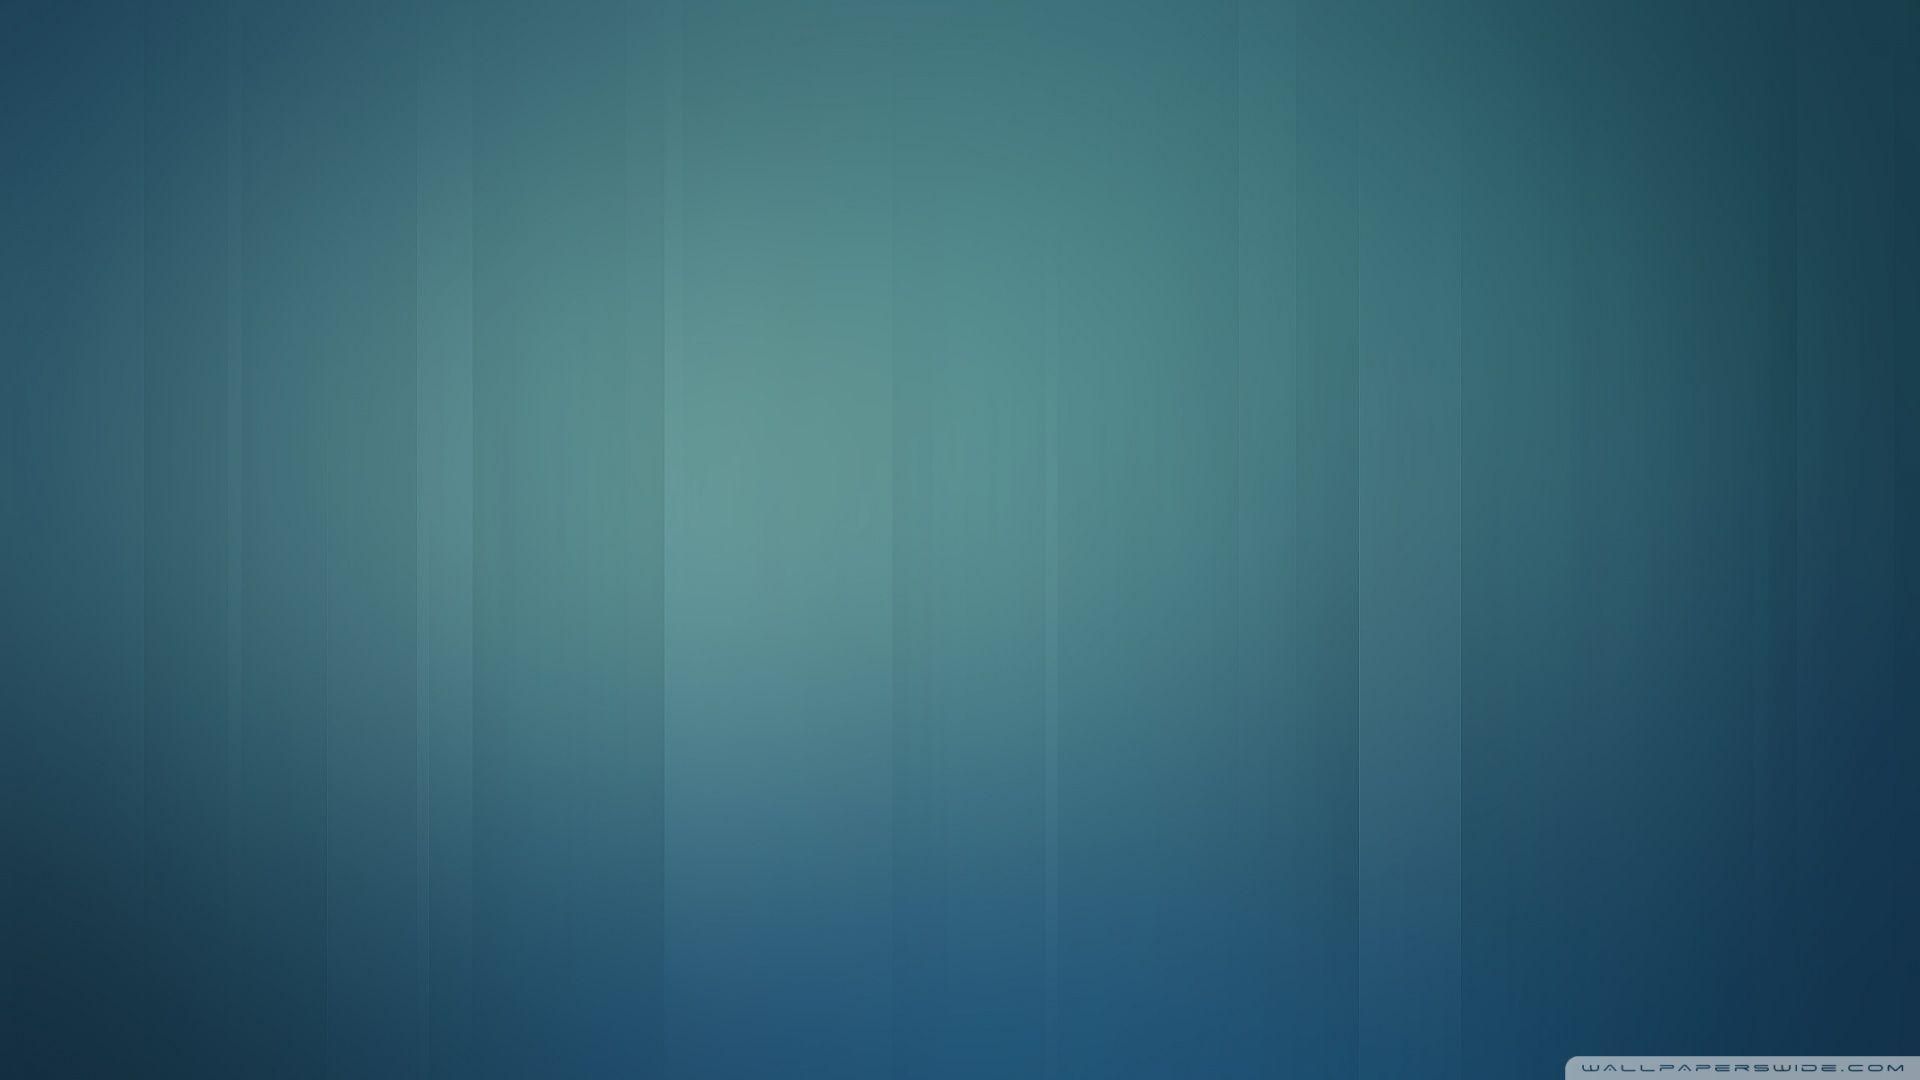 Simple Dark Blue Wallpaper Backgrounds 1 HD Wallpapers